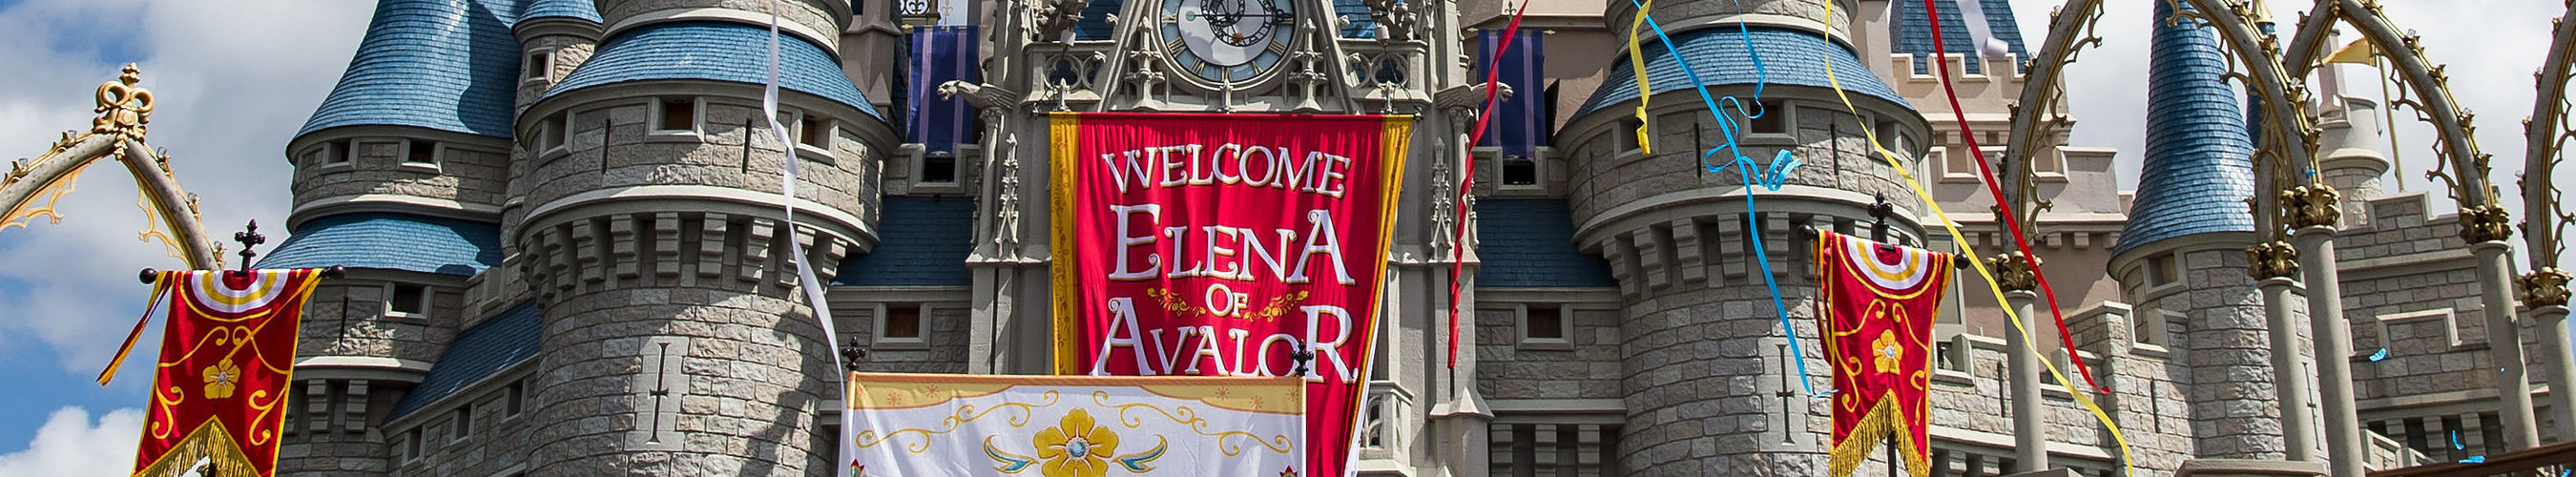 "Princess Elena of Avalor, the first Latin-inspired Disney princess, receives a royal welcome on Aug. 11, 2016 during her arrival at Magic Kingdom Park in Lake Buena Vista, Fla. Princess Elena's arrival at Walt Disney World follows the debut of the new Disney Channel animated series, ""Elena of Avalor."" The adventurous princess appears daily in ""The Royal Welcome of Princess Elena"" stage show at Magic Kingdom. (Matt Stroshane, photographer) (PRNewsFoto/Walt Disney World Resort)"